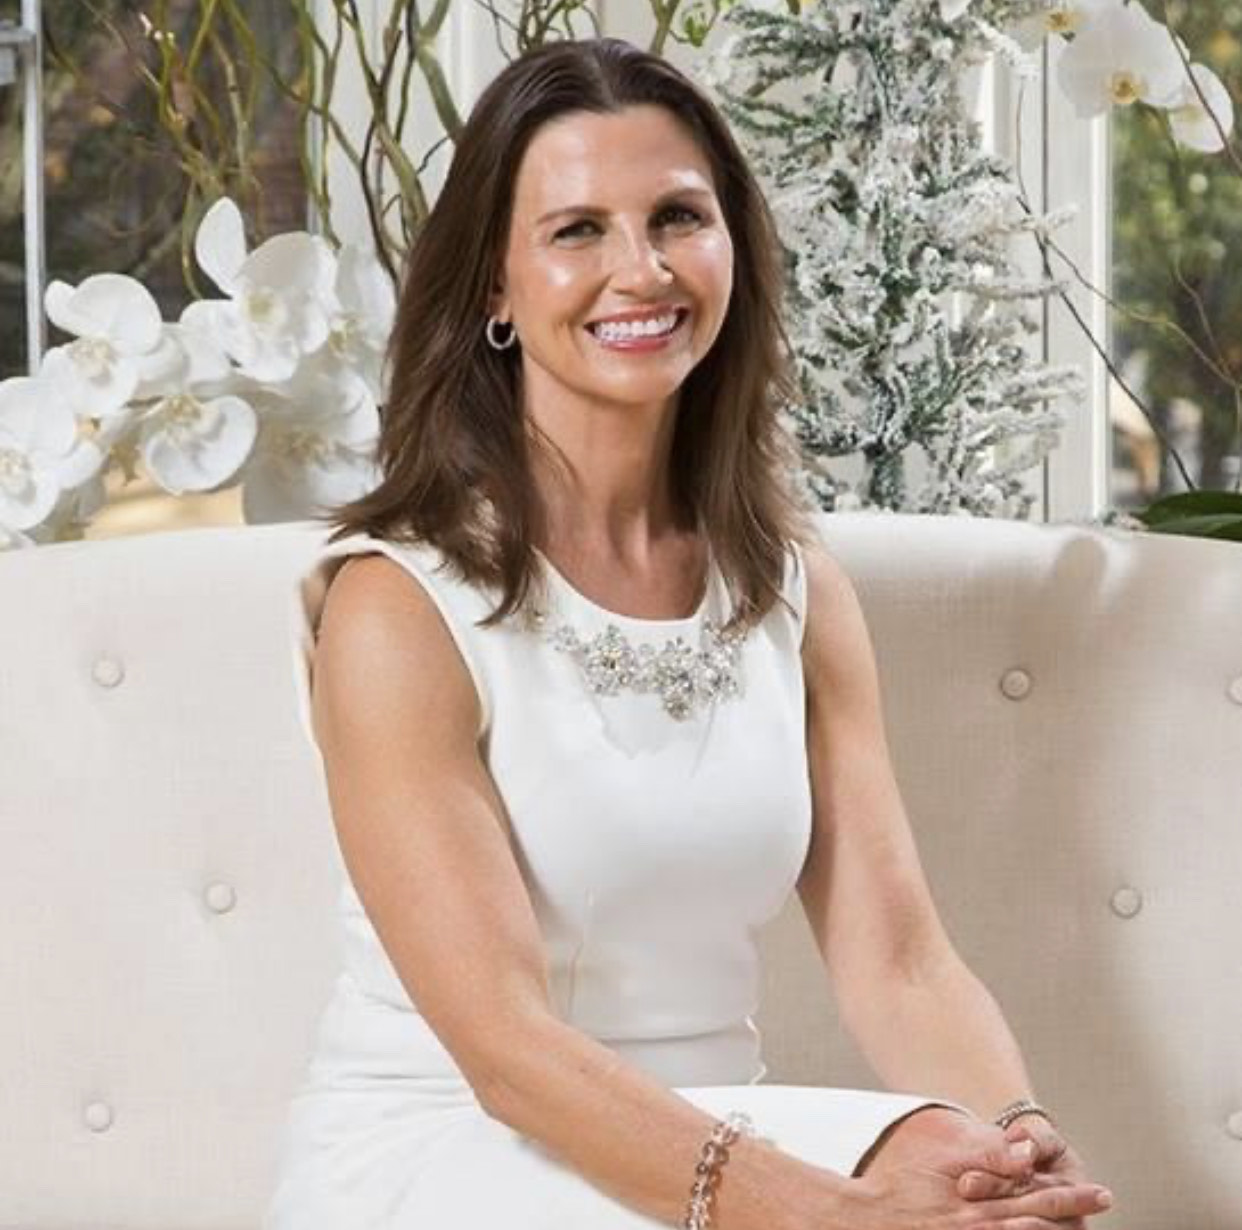 Female Founder Interview: Jen Del Giudice on Healthy Living in the New Normal